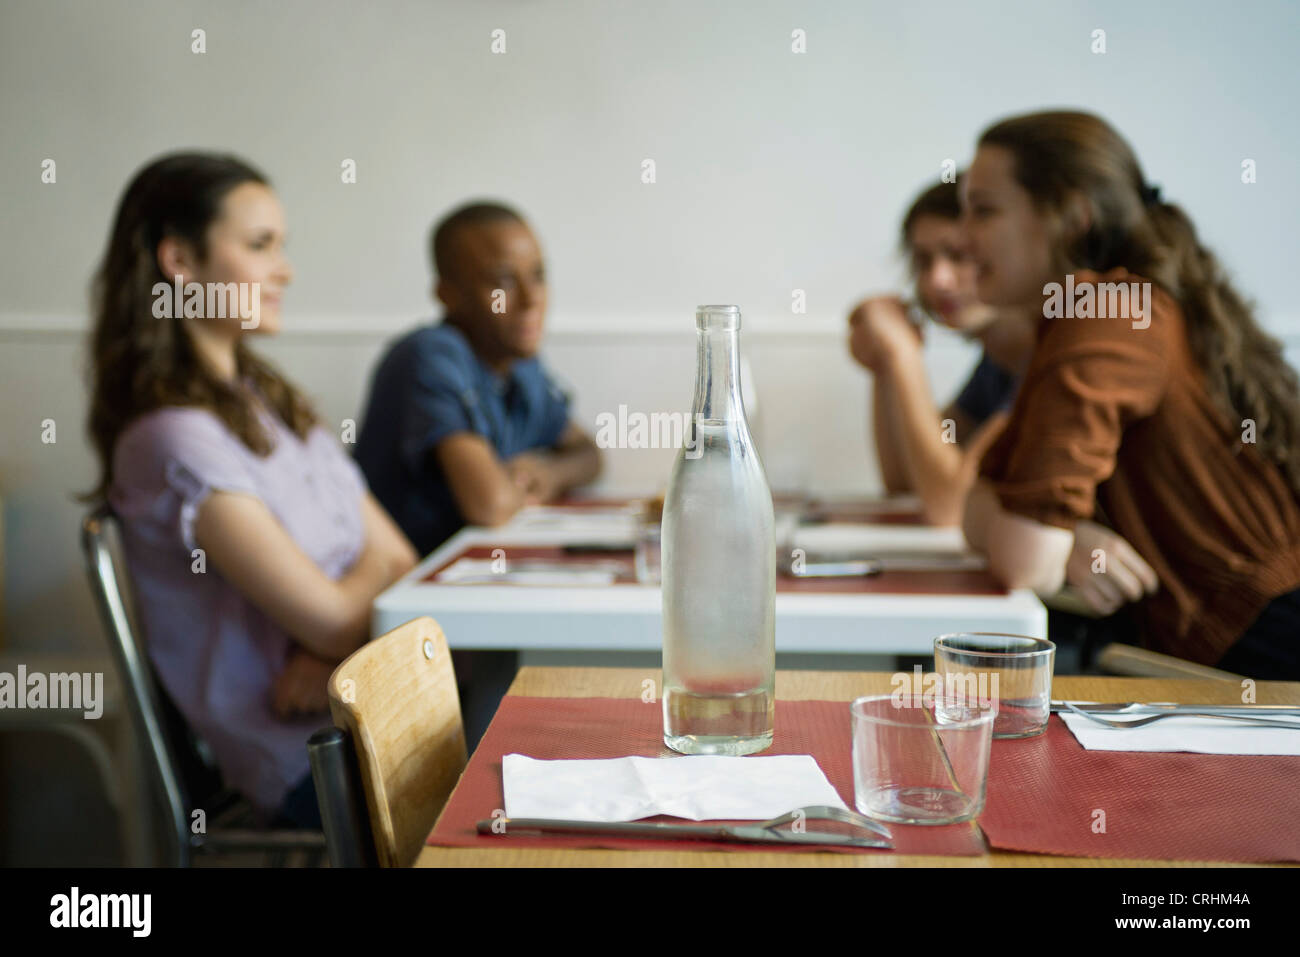 Friends hanging out in cafe, focus on empty table in foreground - Stock Image